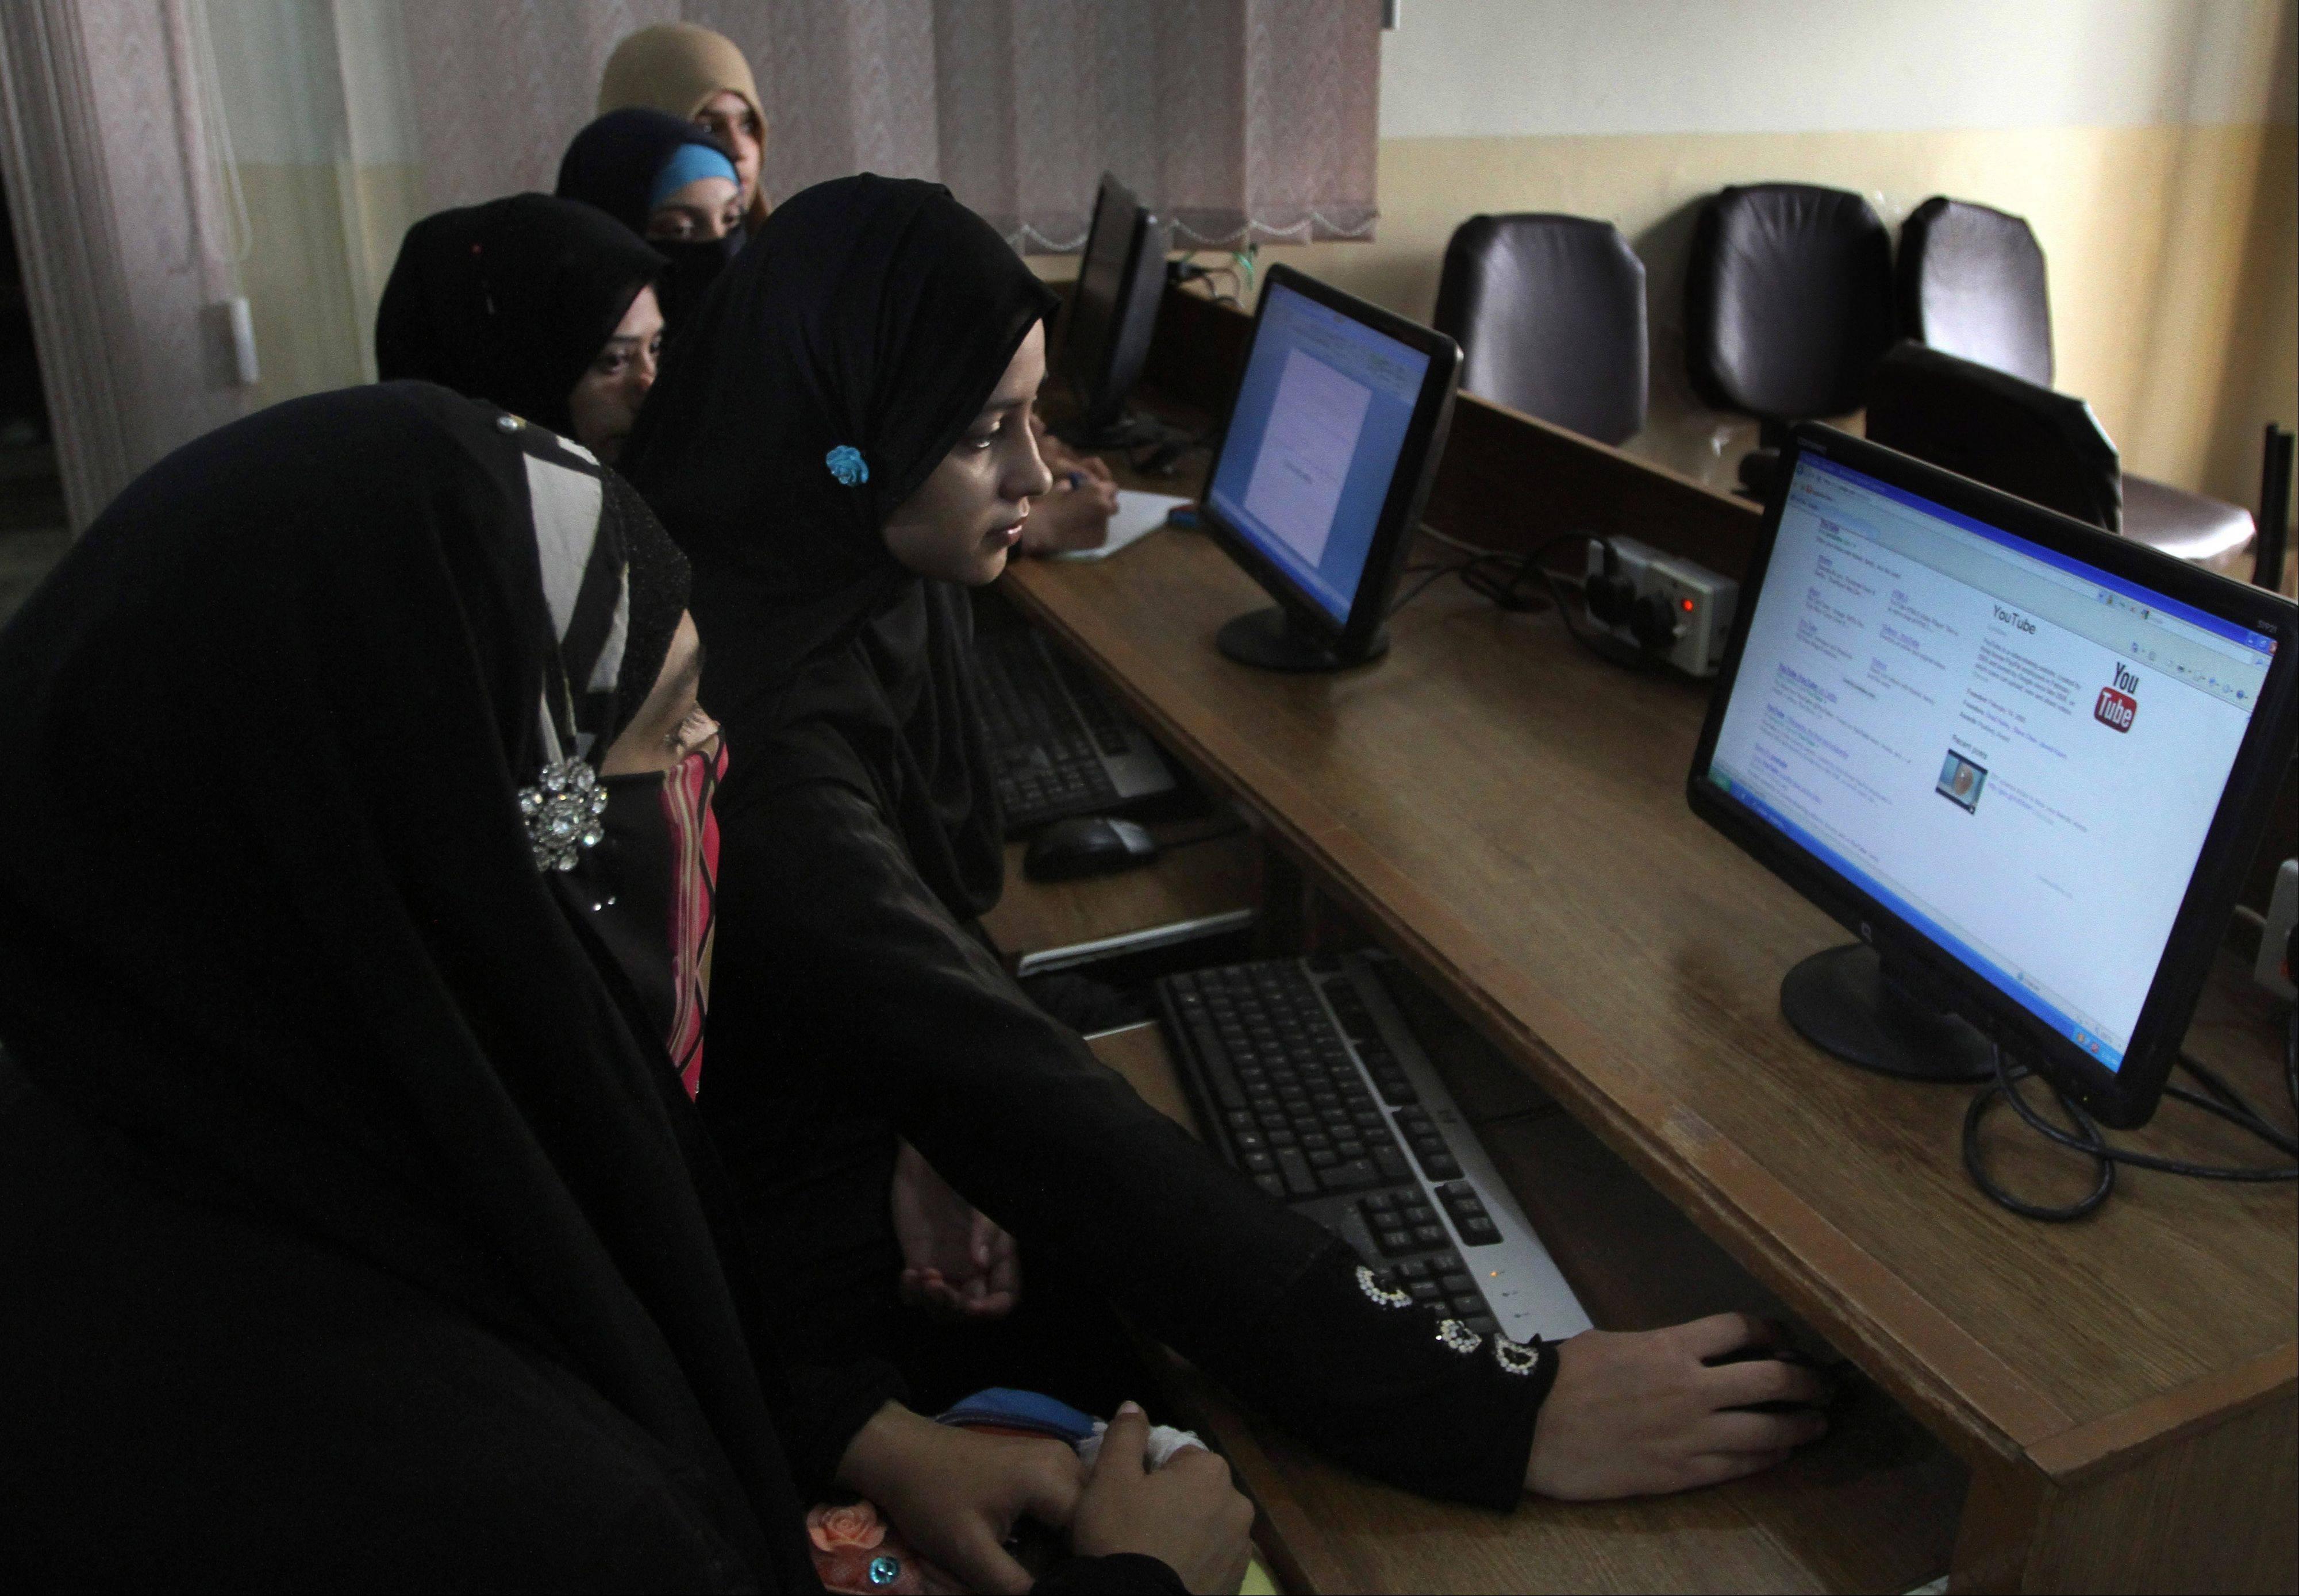 University students try to access YouTube in Karachi, Pakistan. For almost a year, Pakistan�s wanting to watch the video-sharing website YouTube have had to find other alternatives. The site has been banned after Pakistani officials acting in response outrage across the country over the airing of an anti-Islamic film blocked access to YouTube.